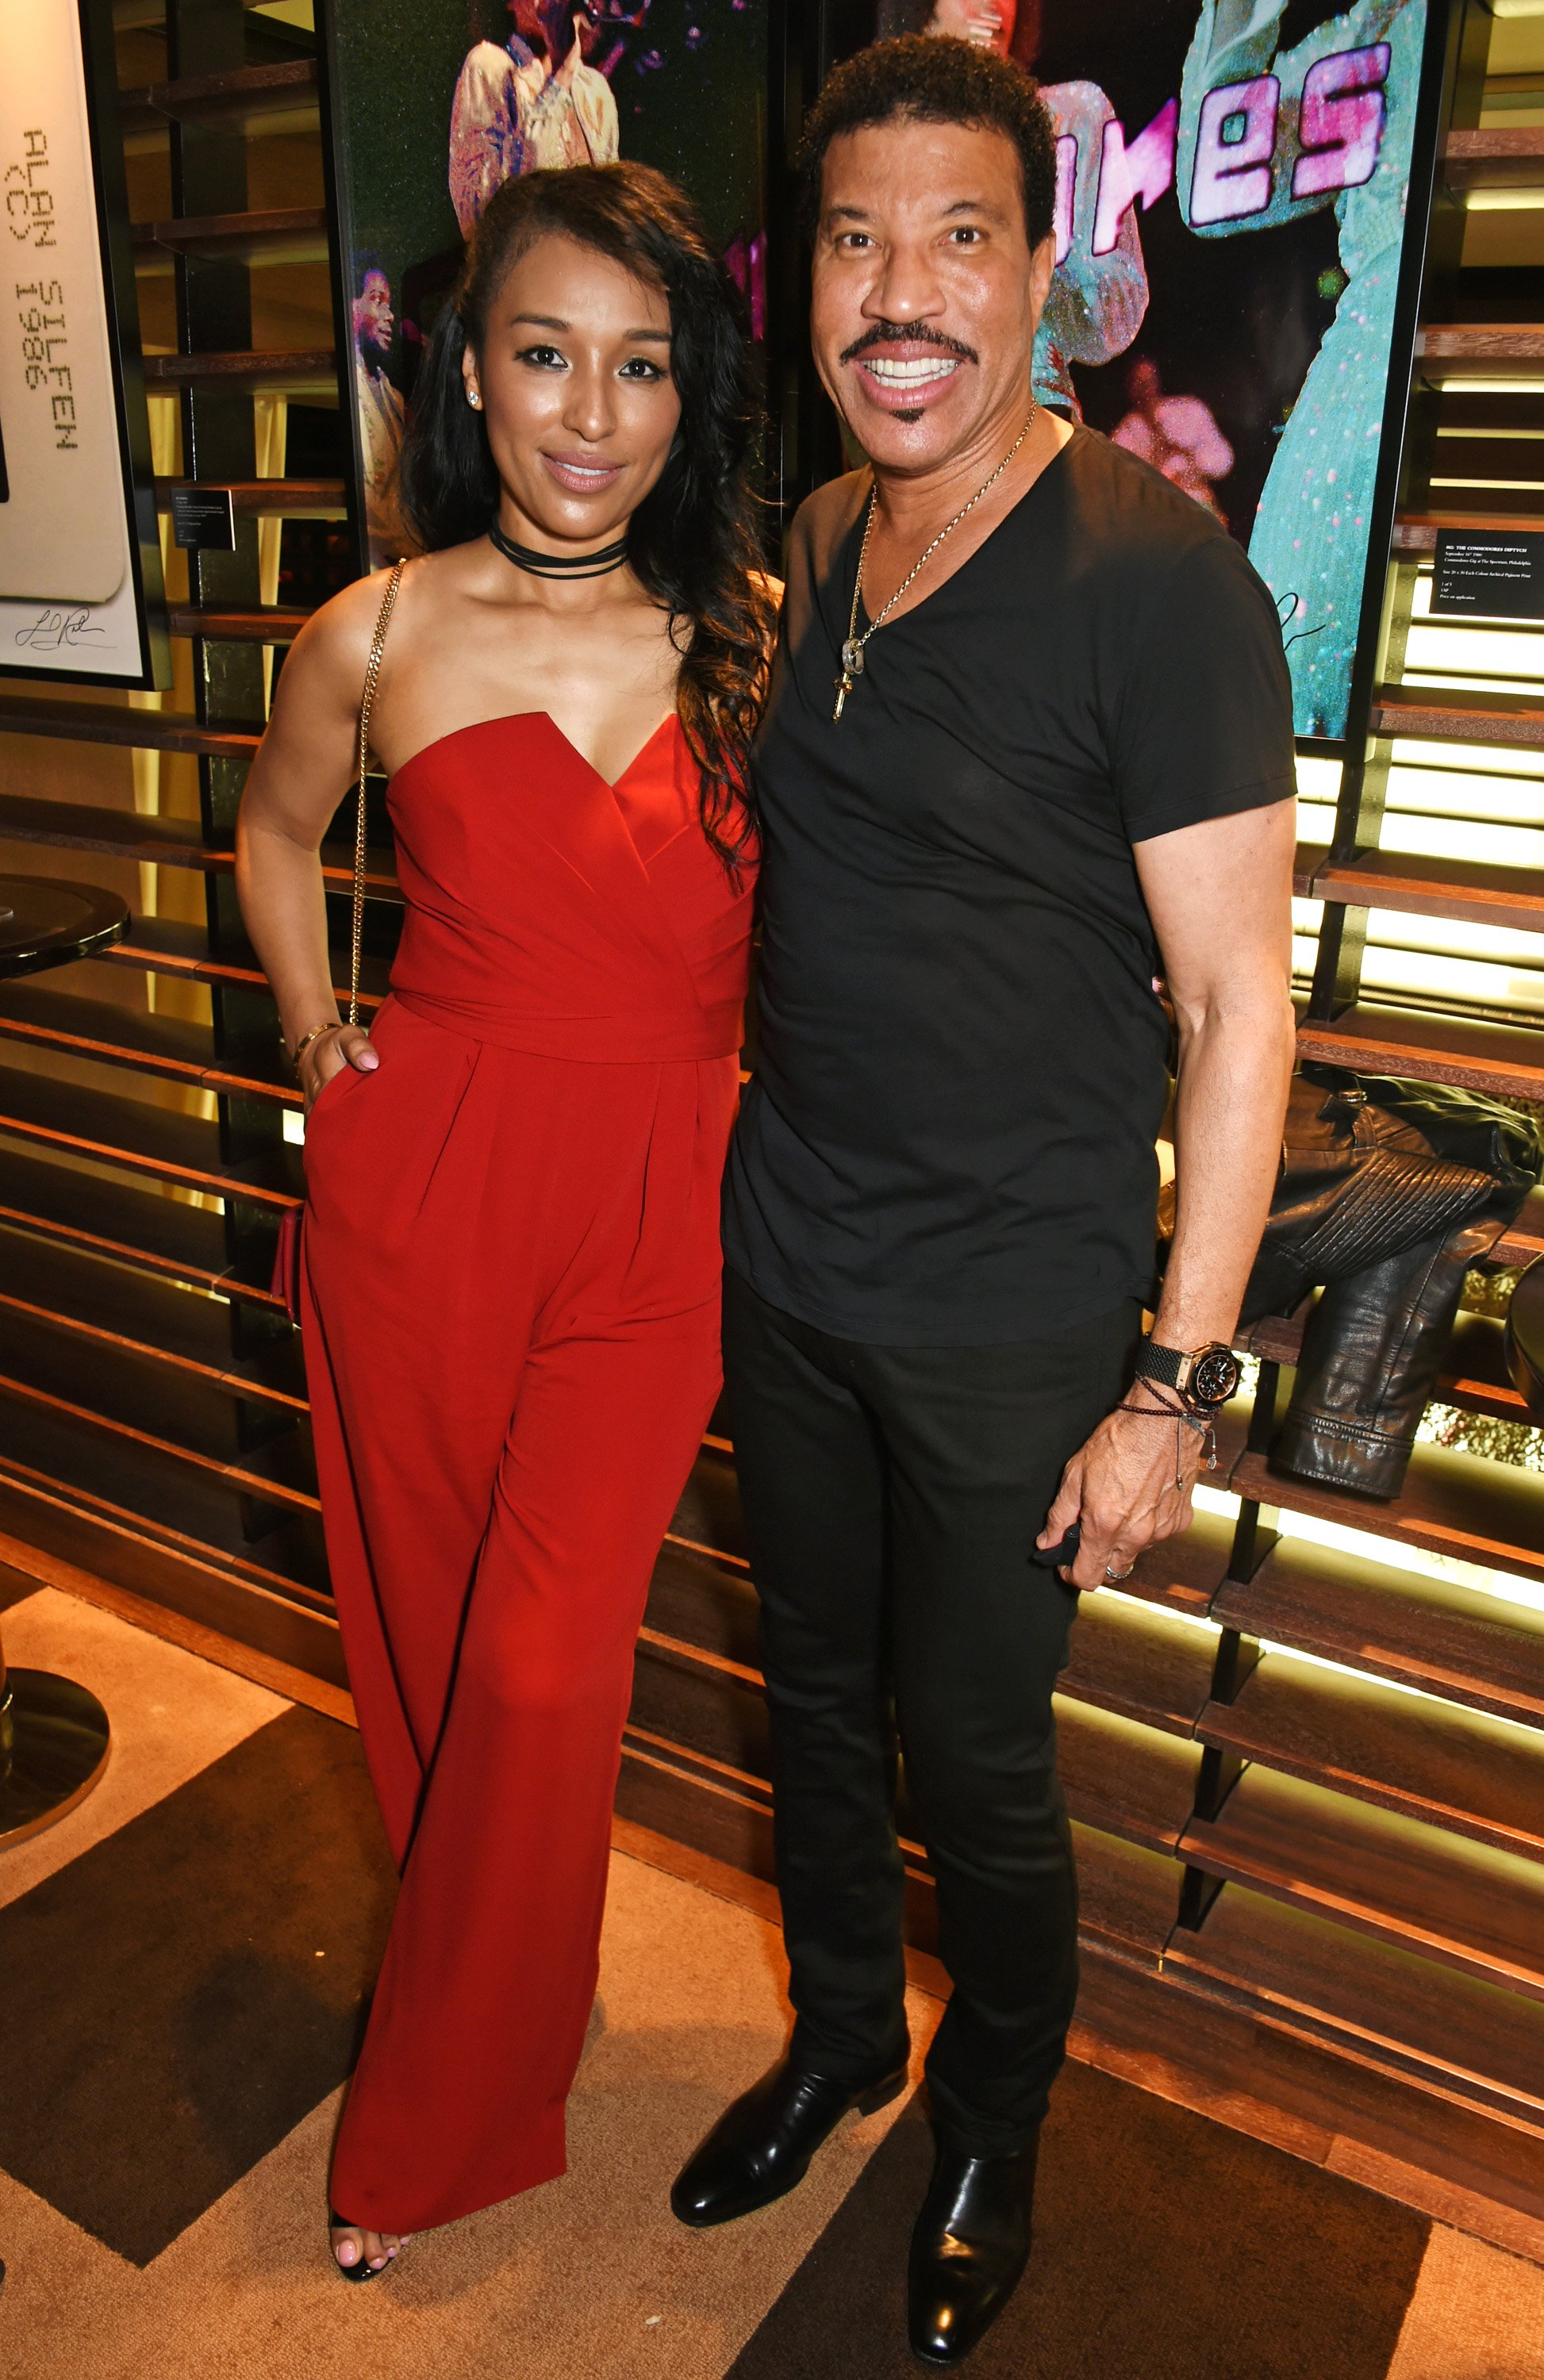 Lisa Parigi and Lionel Richie attend the exclusive Lionel Richie exhibition 'STILL at Dorchester Collections Mayfair hotel, on July 5, 2016 in London, England | Photo: GettyImages